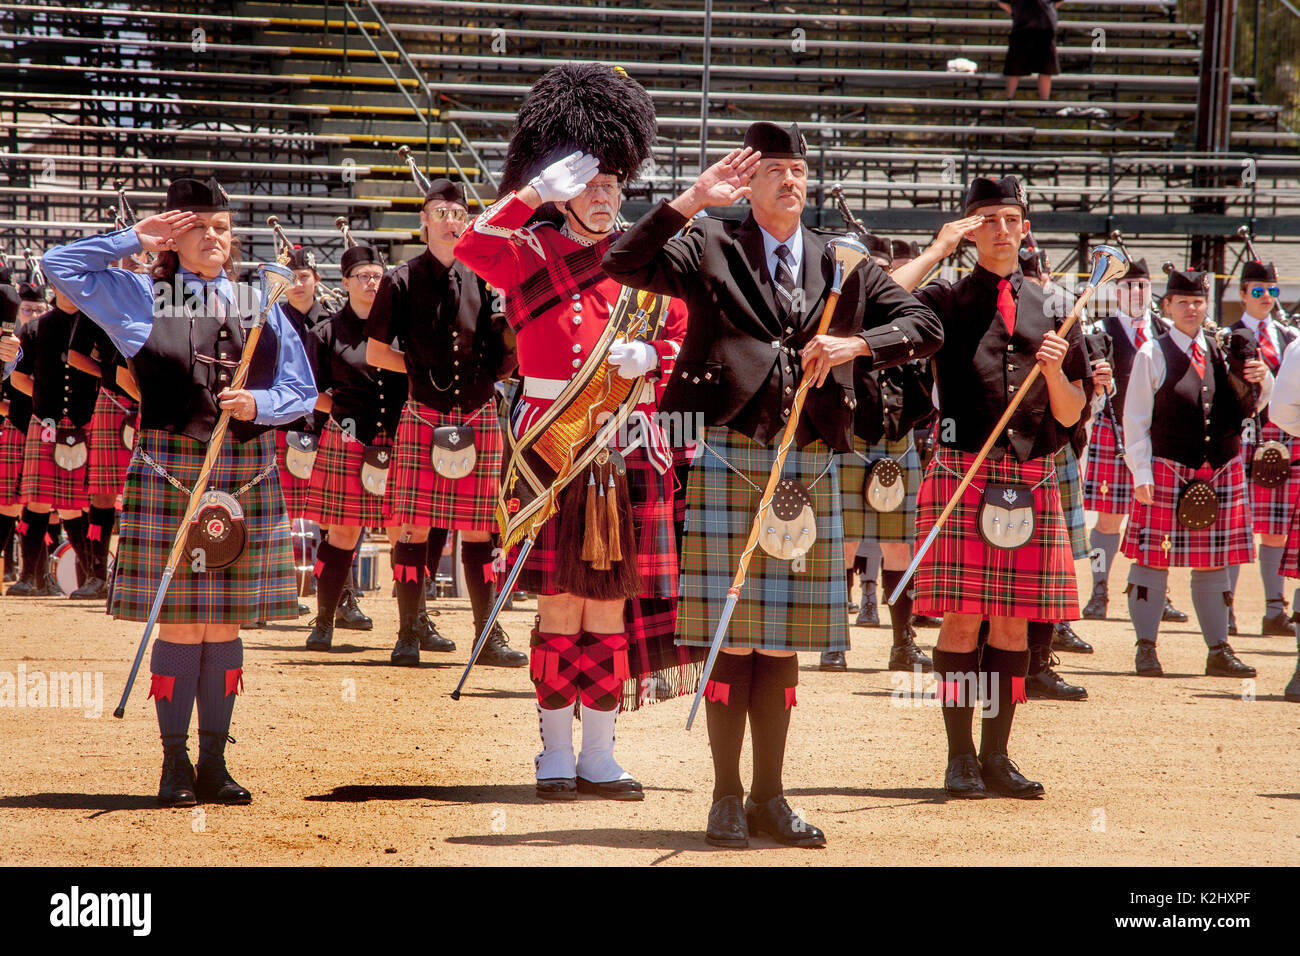 A kilted drum major carries his baton while leading a Scottish marching band at an ethnic festival in Costa Mesa, CA. - Stock Image